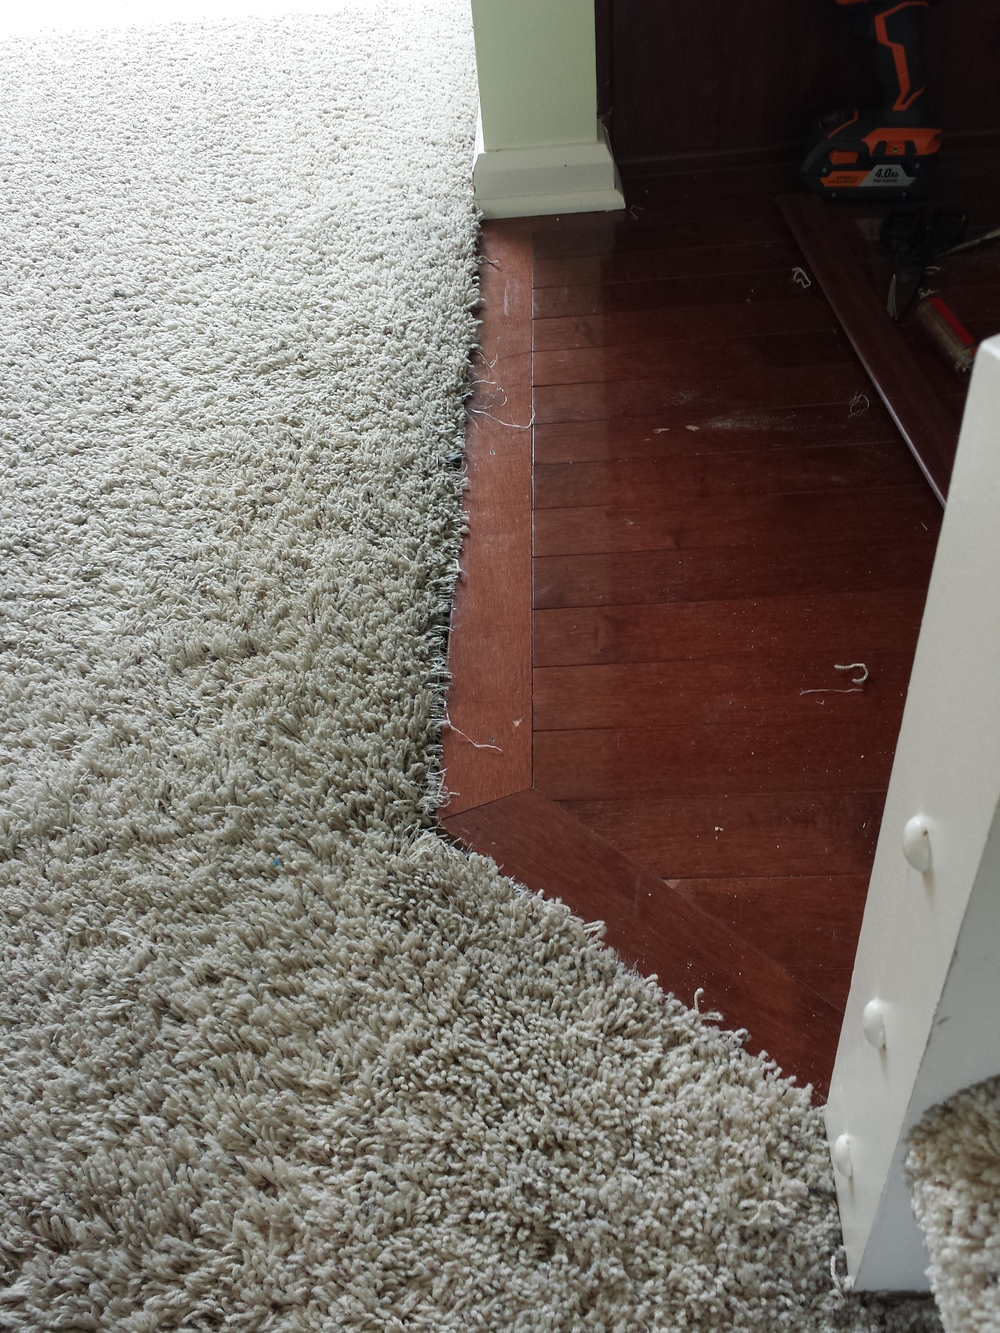 Frayed carpet edge into kitchen